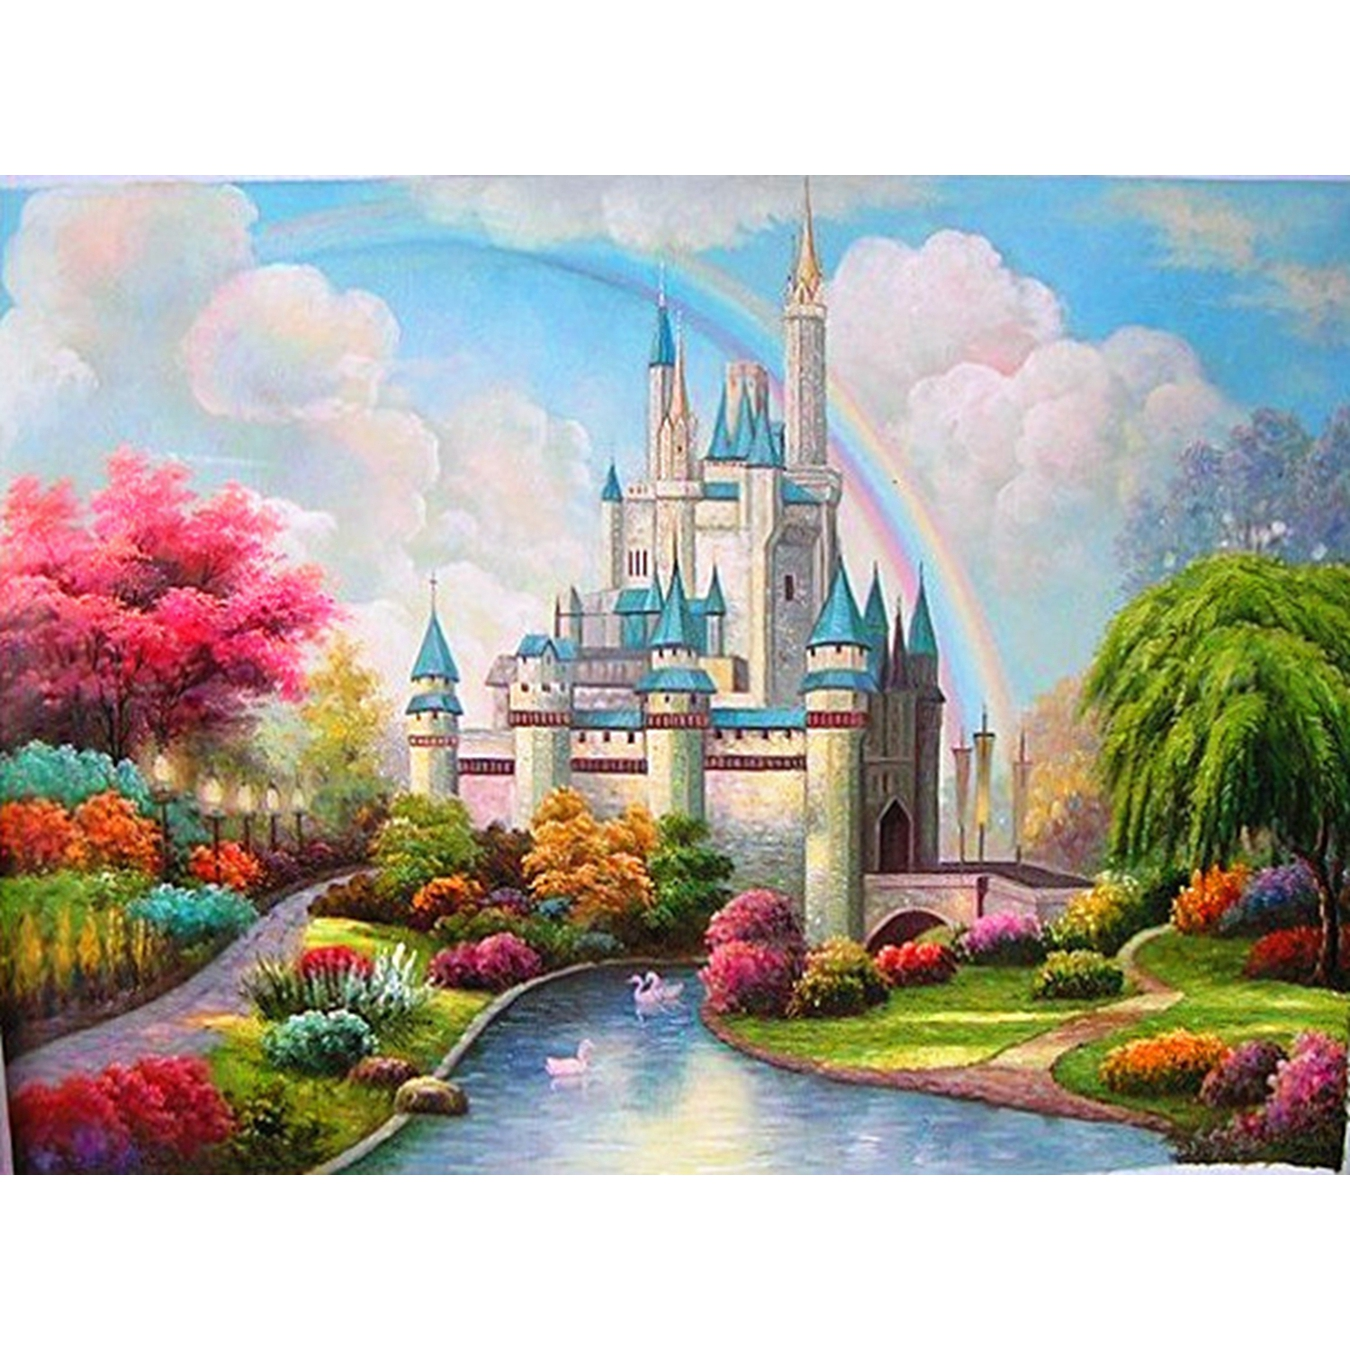 YTG Decor Crafts 5D DIY Dream Castle Full Diamond Painting